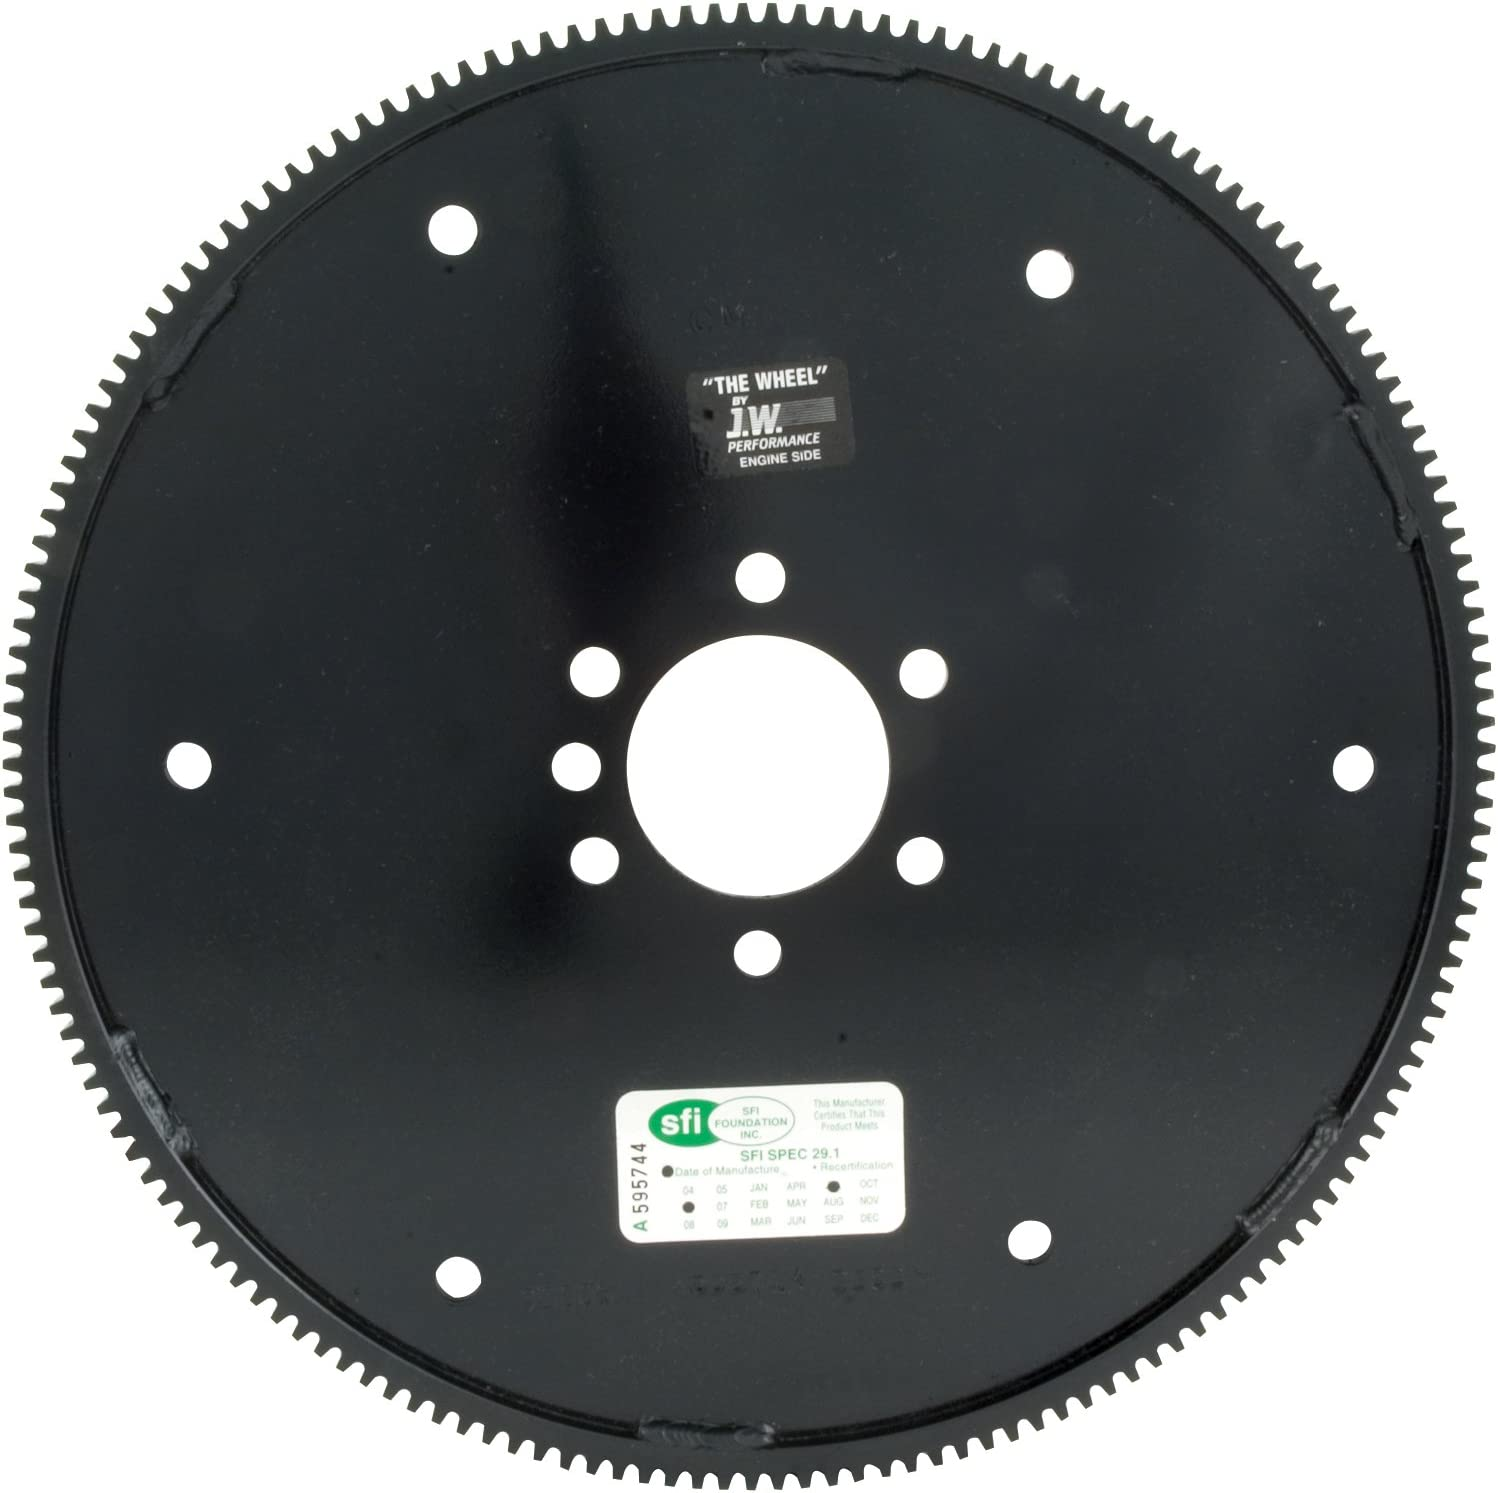 5 ☆ very popular J.W. Performance Transmissions N93002-468 Fo for Flexplate Super special price Crank